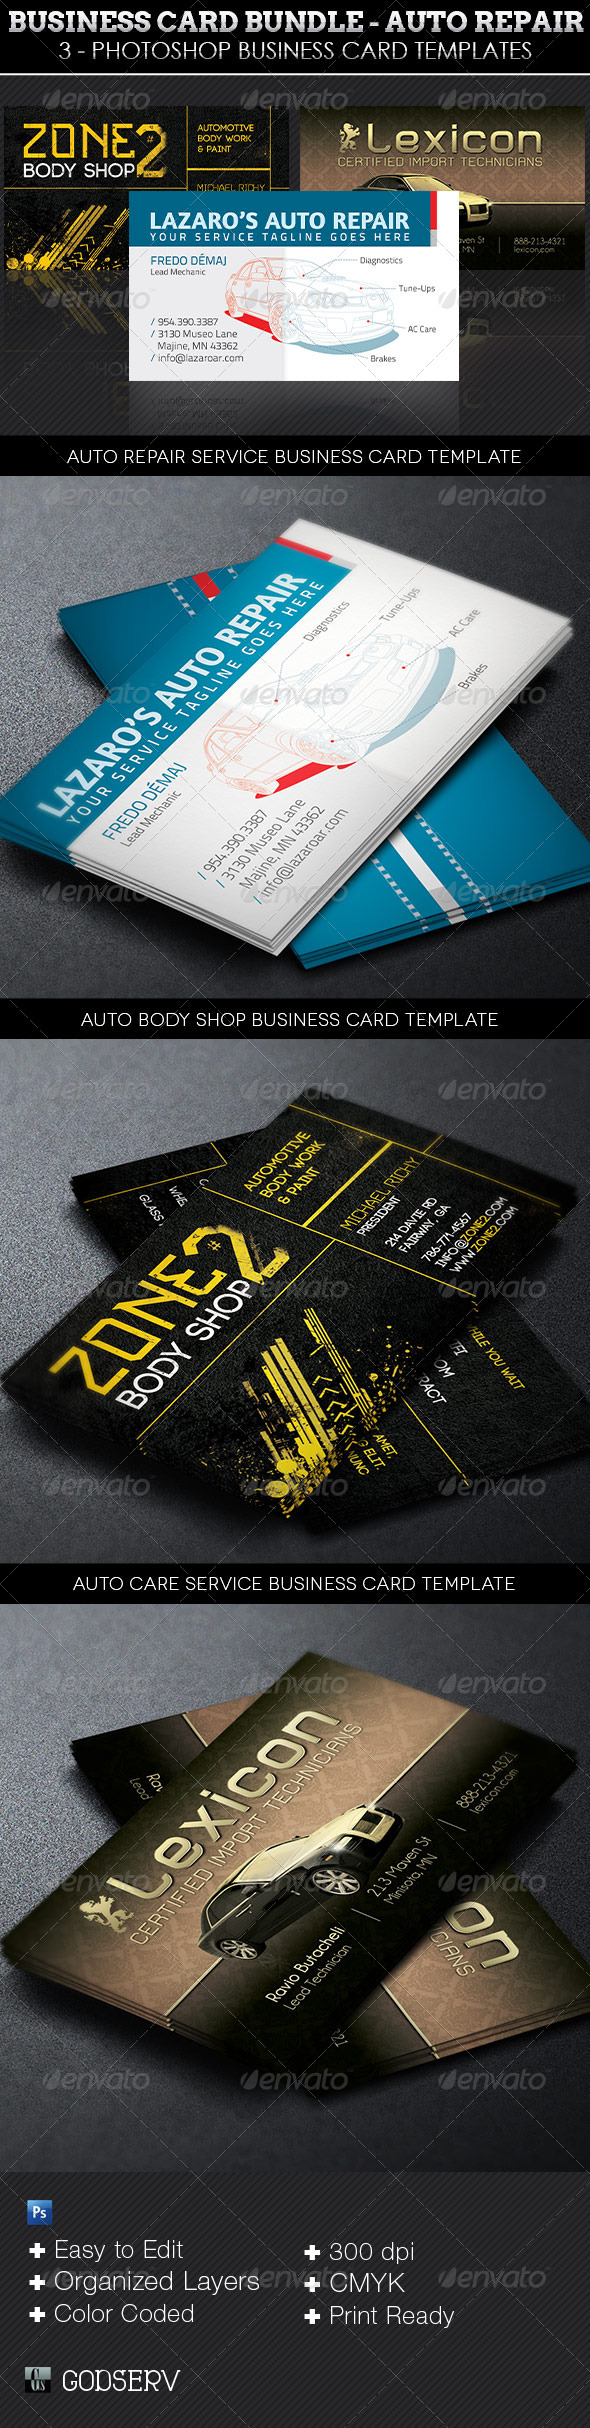 Corporate 2 template 2 industry specific business card templates corporate 2 template 2 industry specific business card templates page 6 reheart Image collections